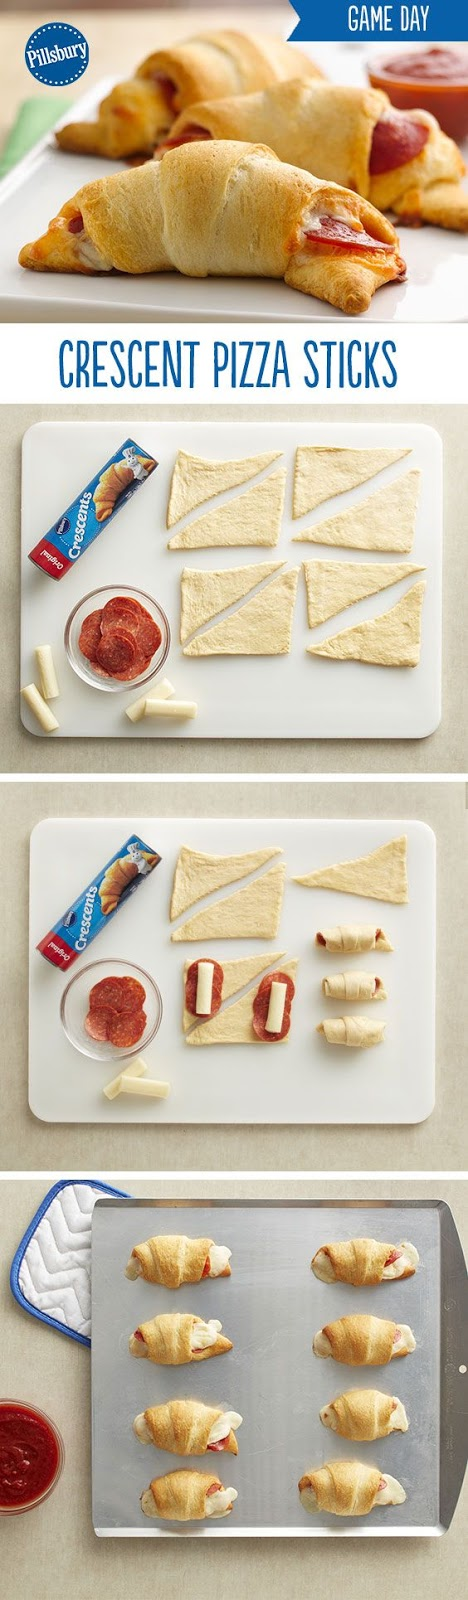 ★★★★☆ 7561 ratings | Crescent Pizza Sticks #HEALTHYFOOD #EASYRECIPES #DINNER #LAUCH #DELICIOUS #EASY #HOLIDAYS #RECIPE #Crescent #Pizza #Sticks